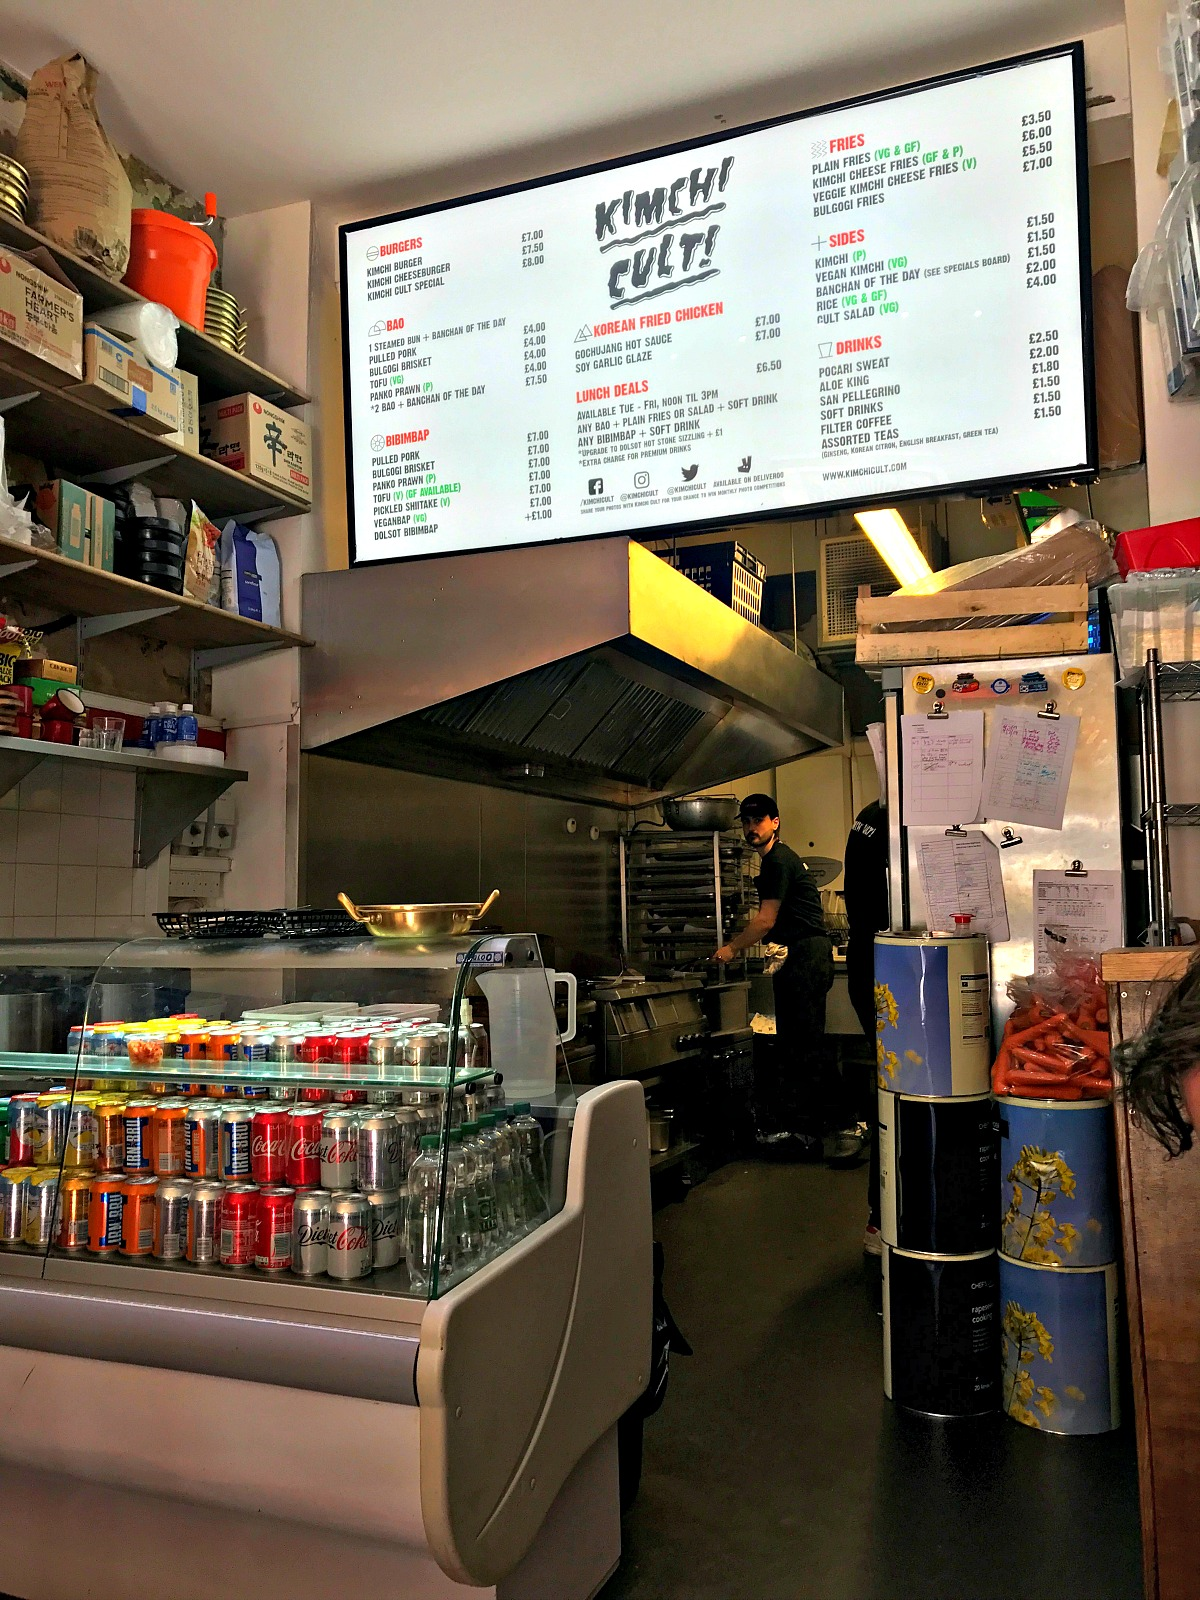 Inside Kimchi Cult looking into the kitchen and at the lovely new menu sign overhead